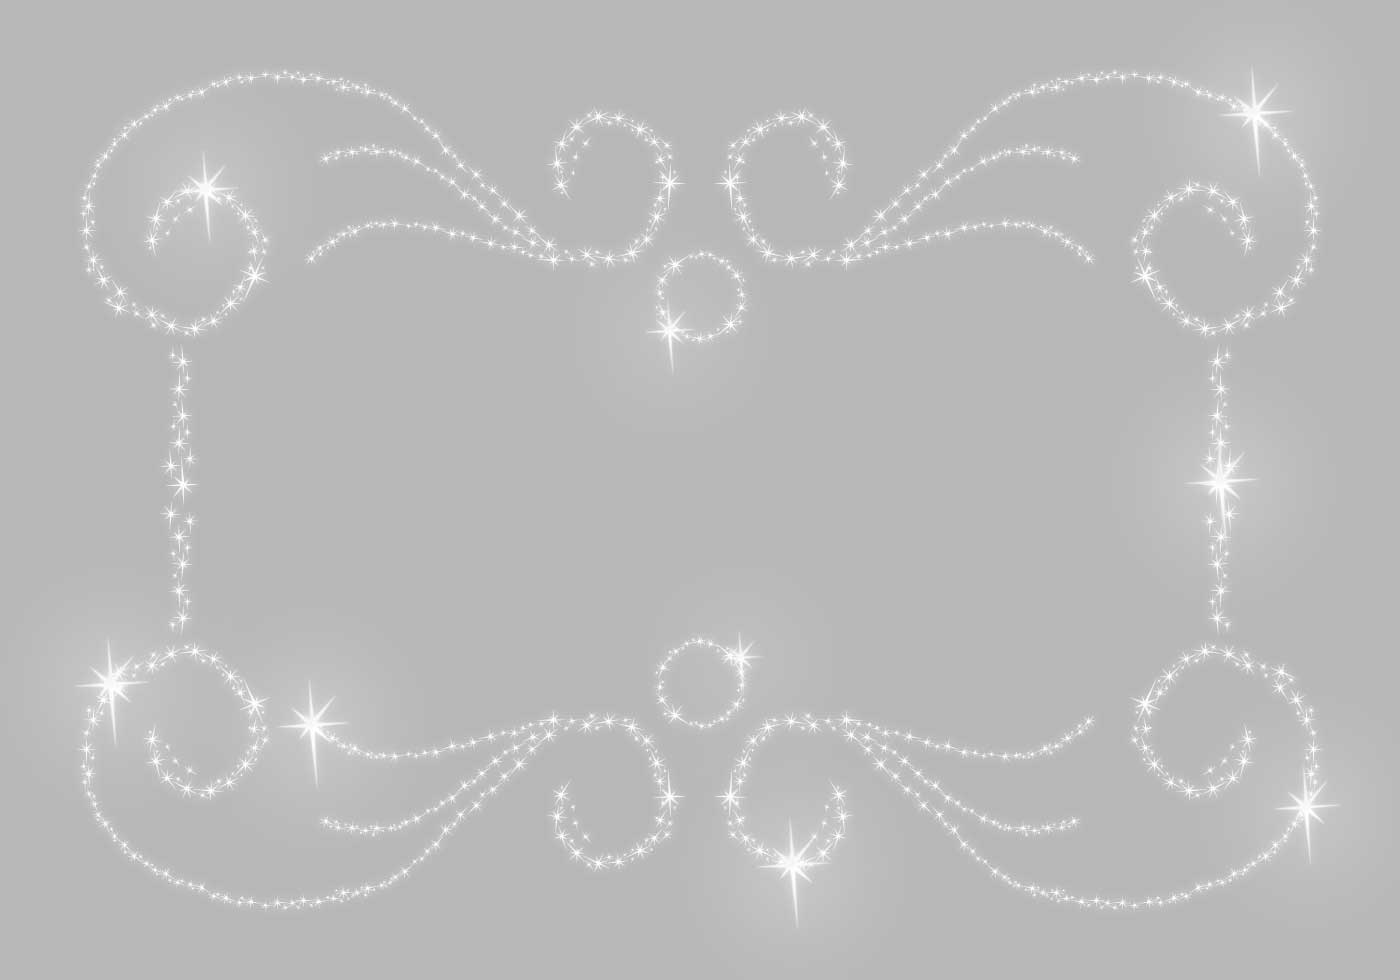 Silver Glitter Background - Download Free Vector Art, Stock Graphics & Images